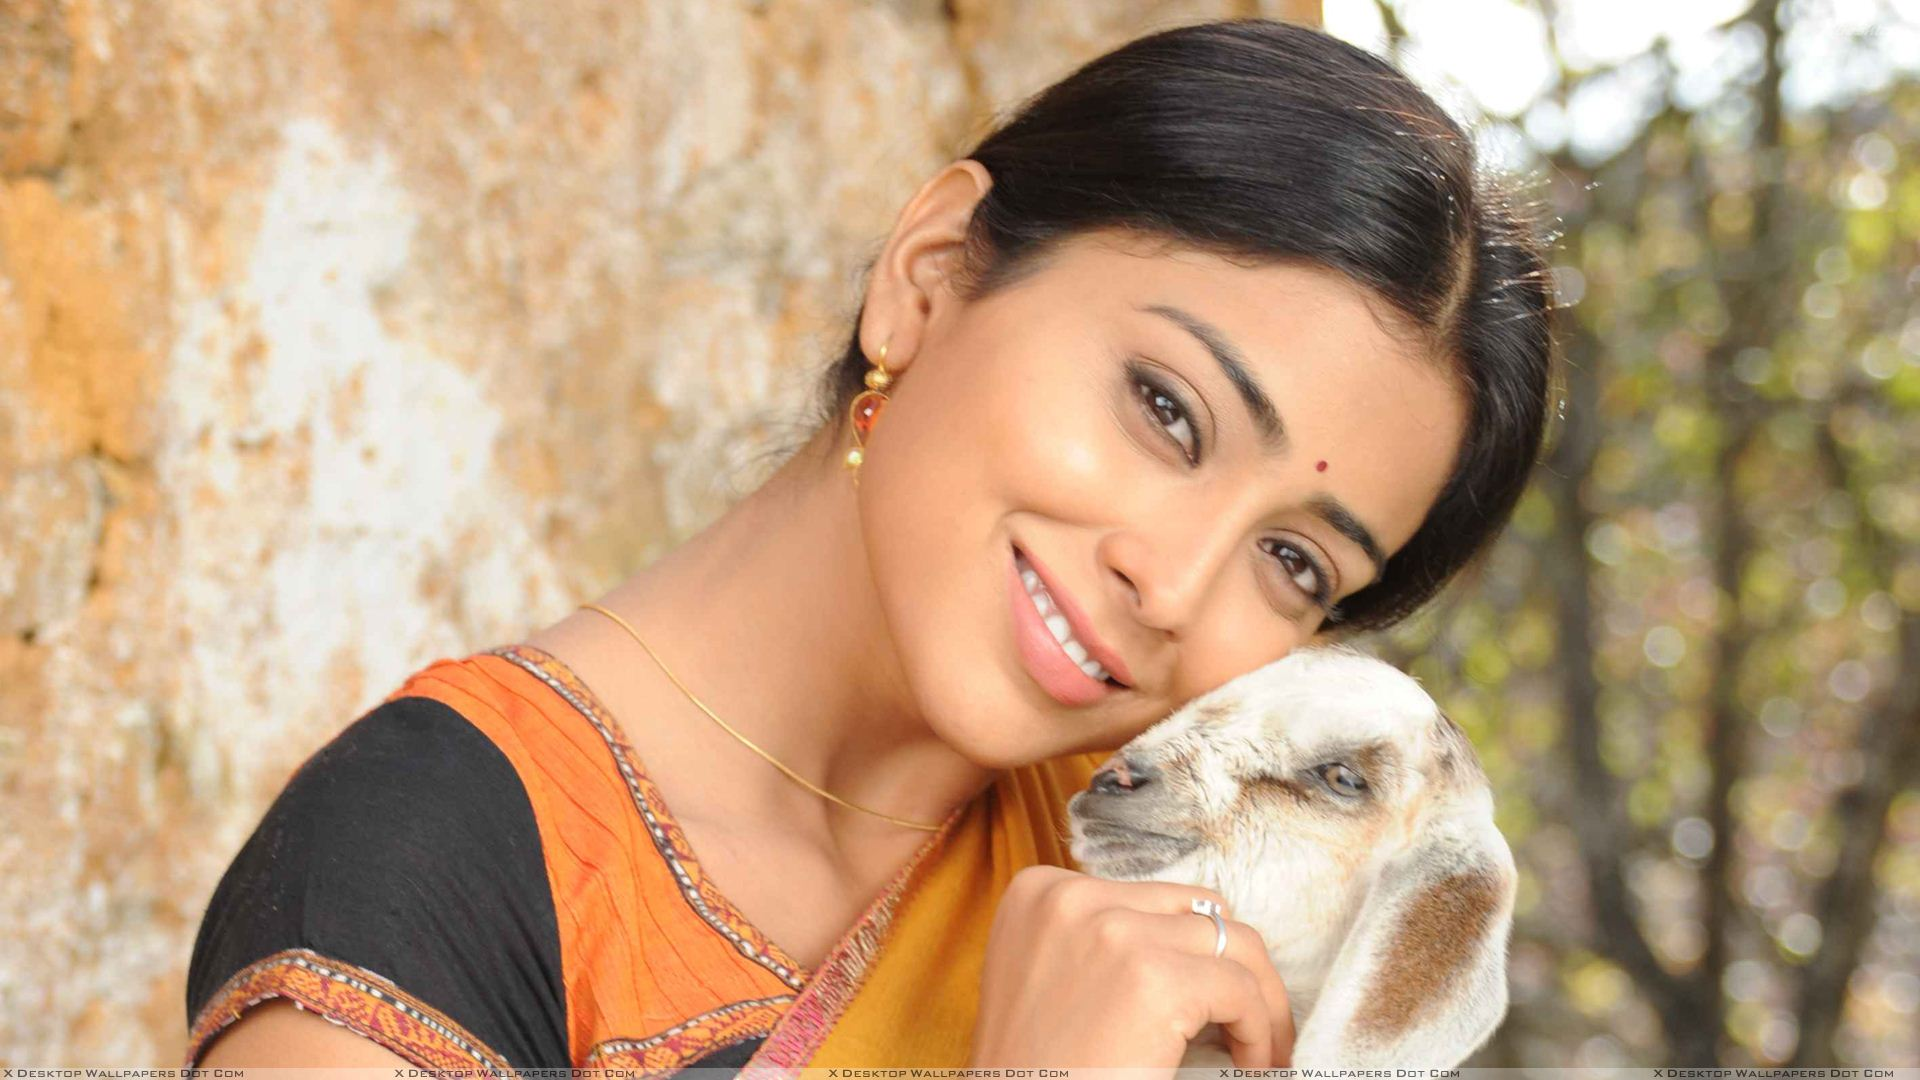 shriya saran smiling with goat photoshoot in kutty movie wallpaper